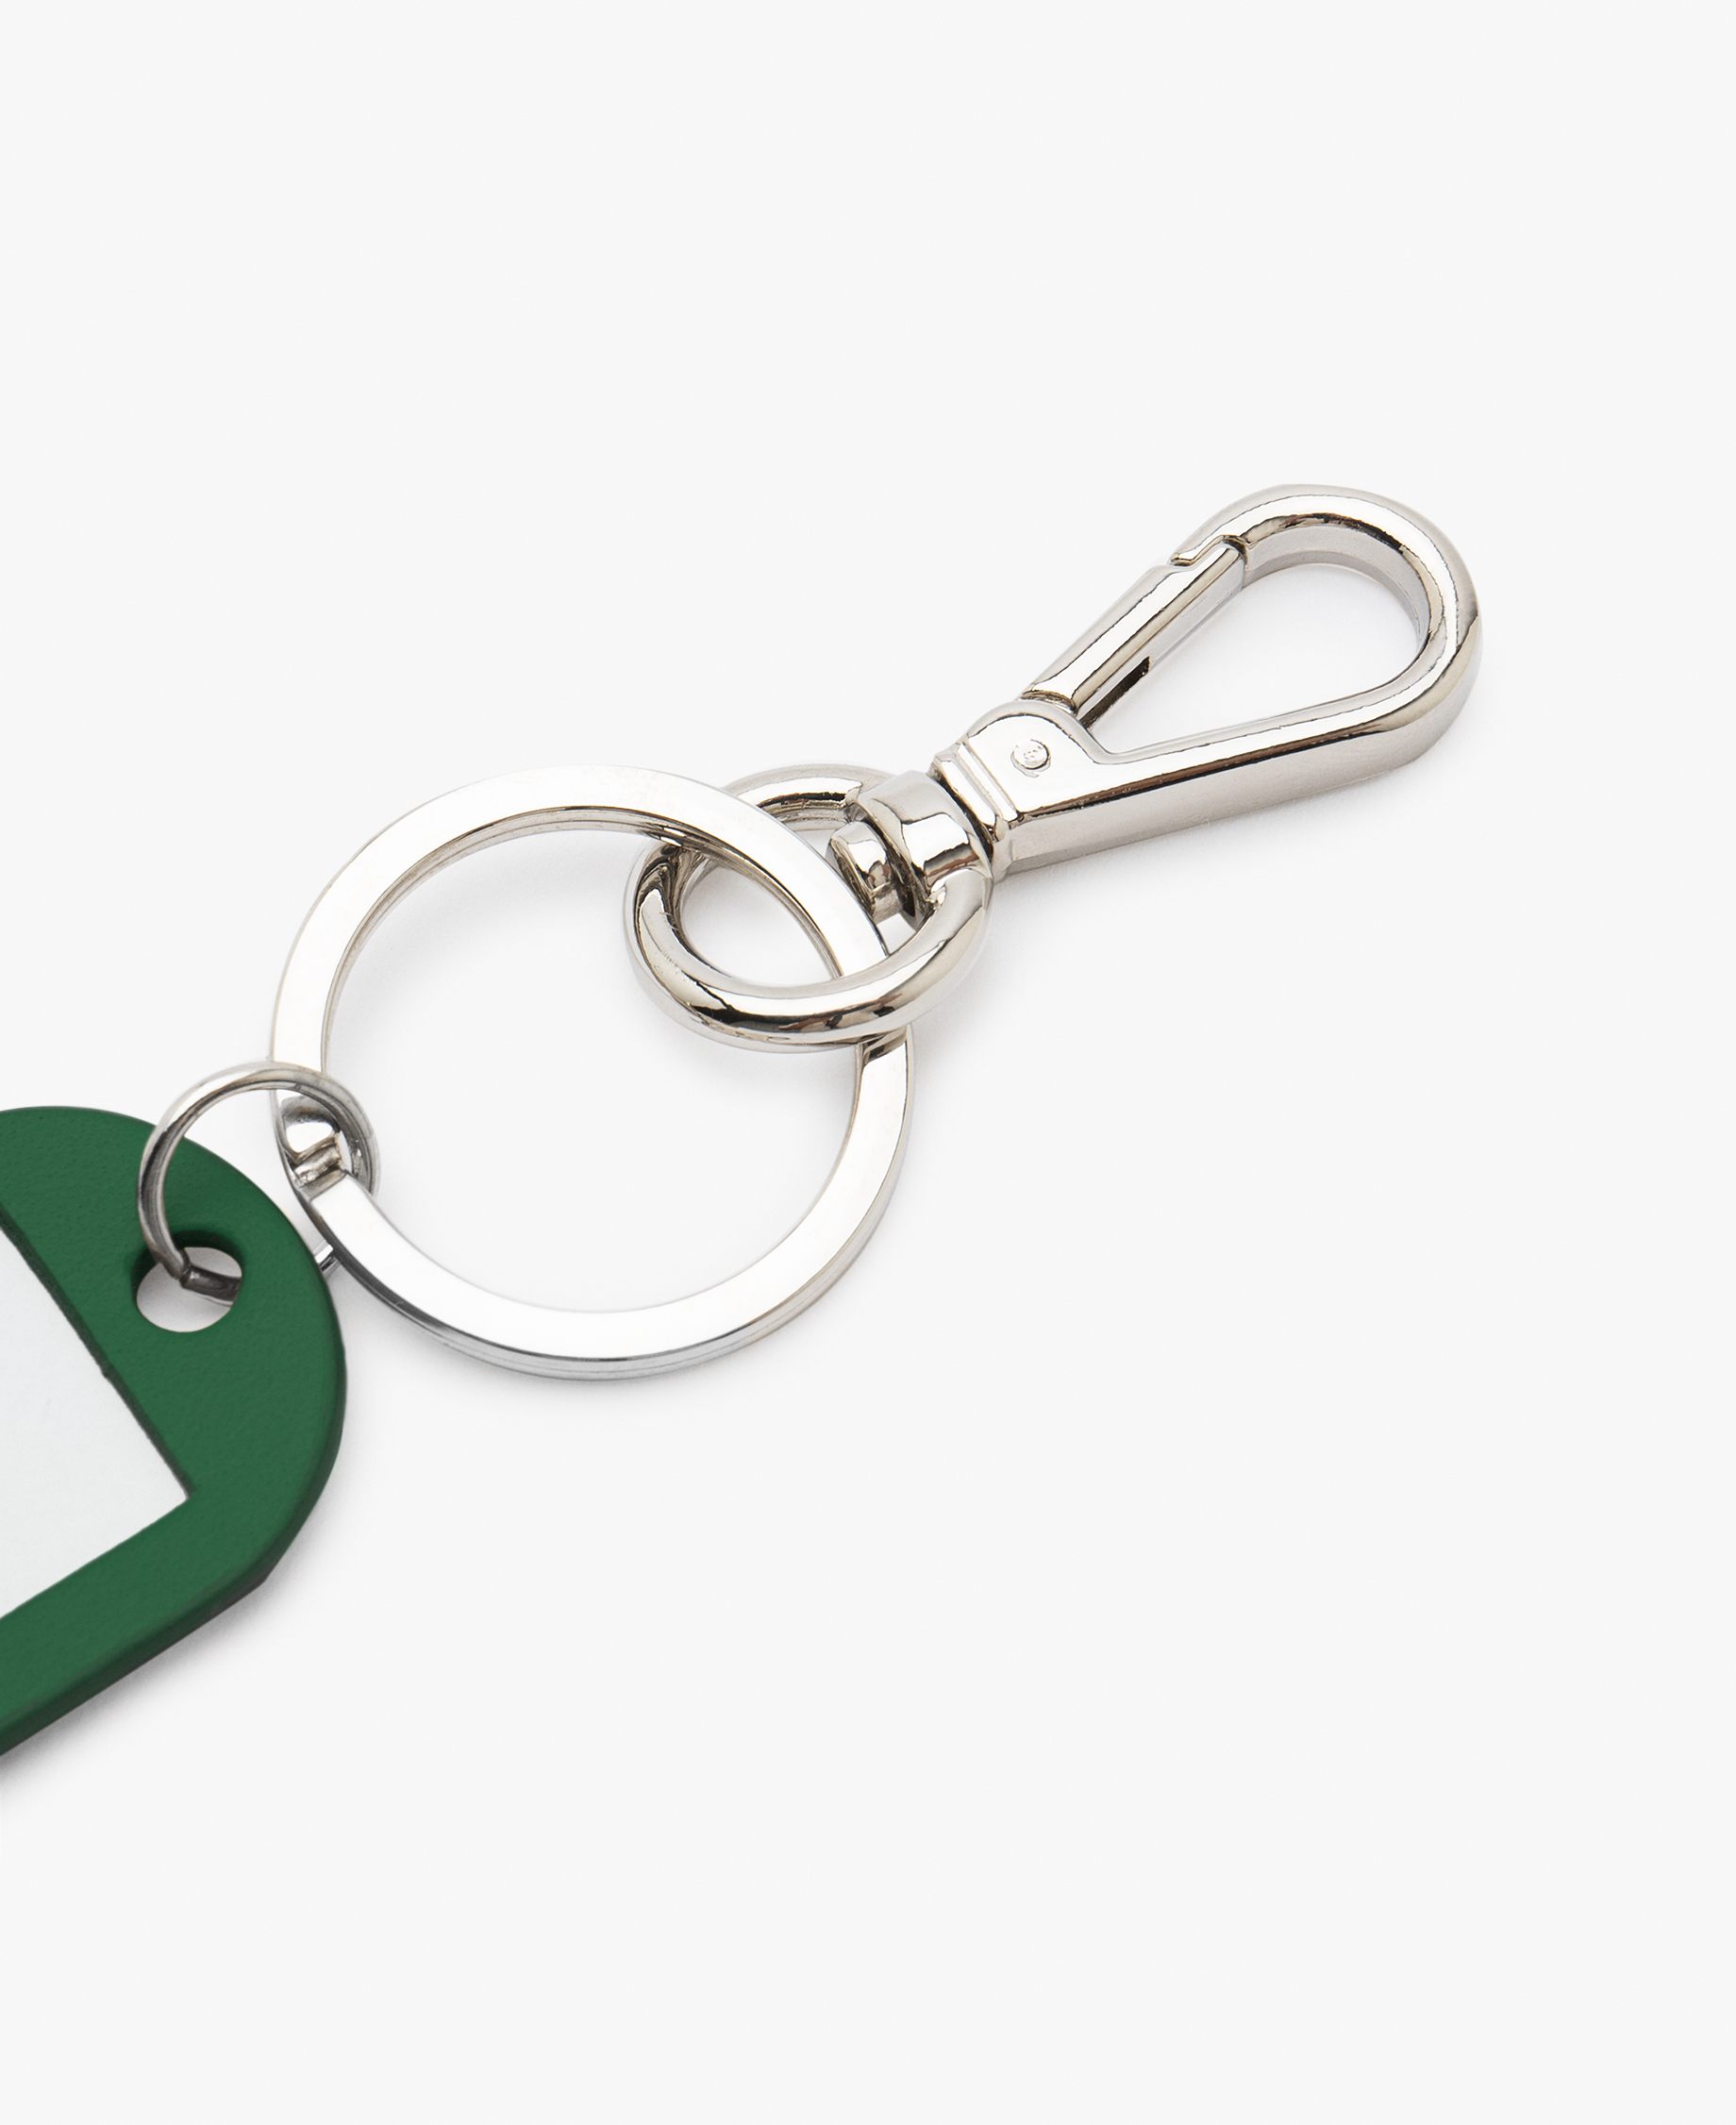 packing ring of a green key holder